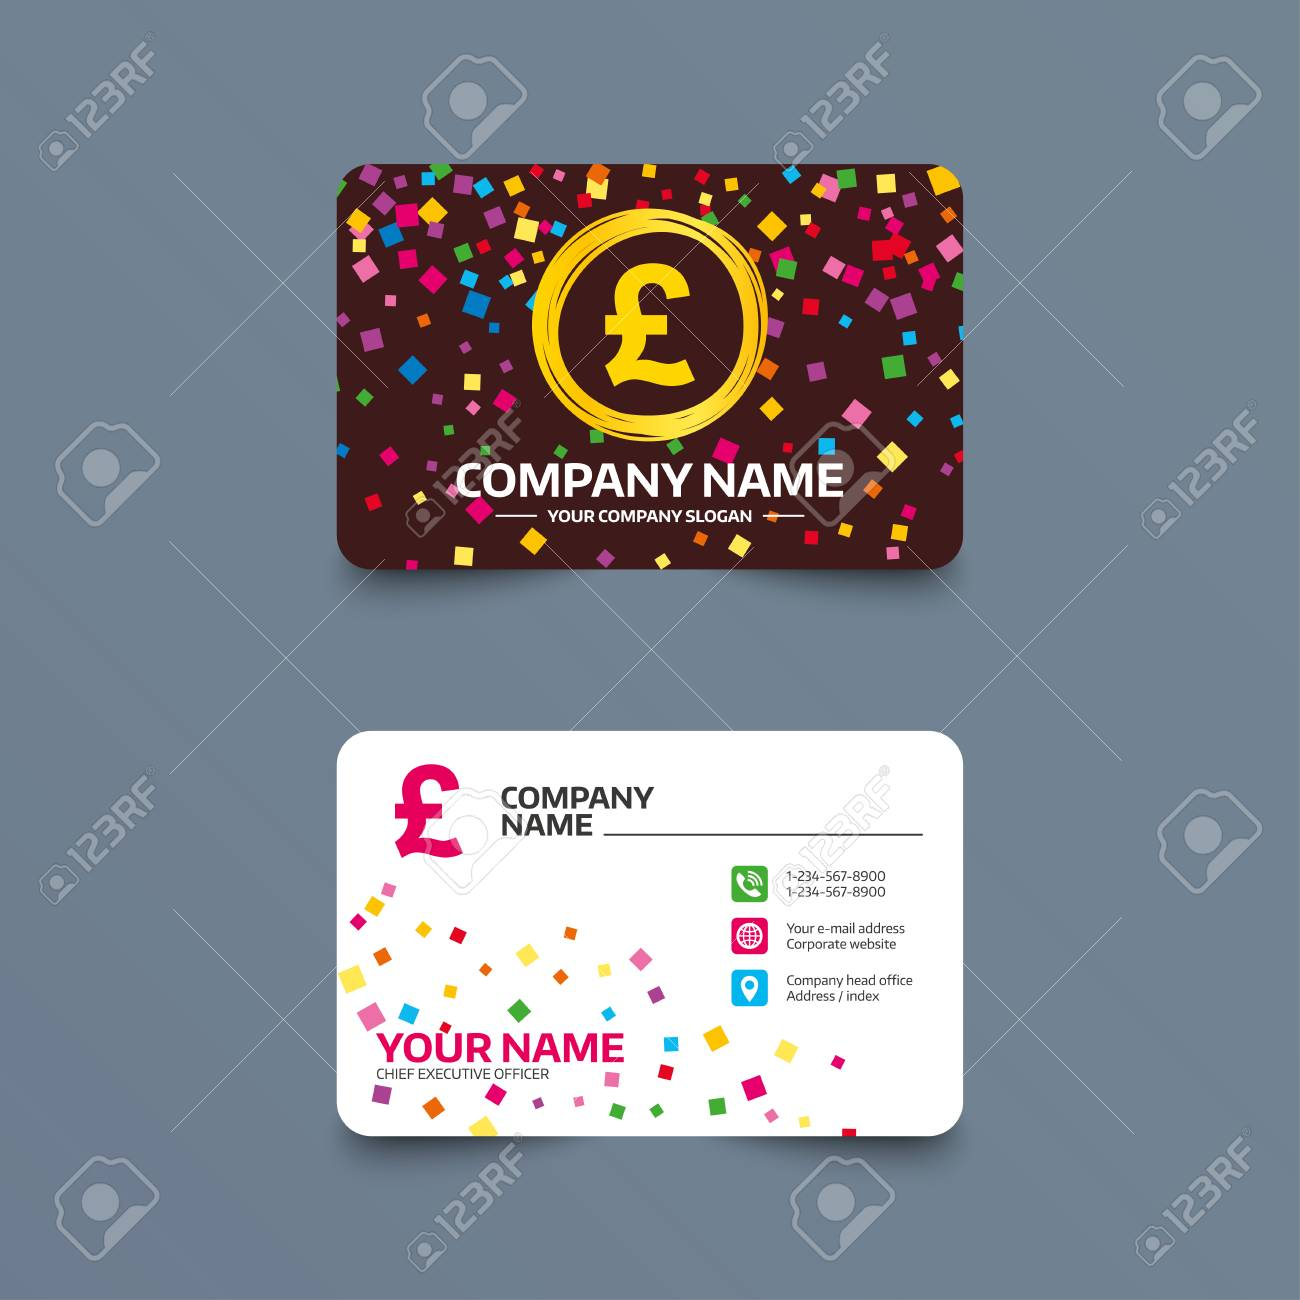 Business card template with confetti pieces pound sign icon business card template with confetti pieces pound sign icon gbp currency symbol money buycottarizona Gallery